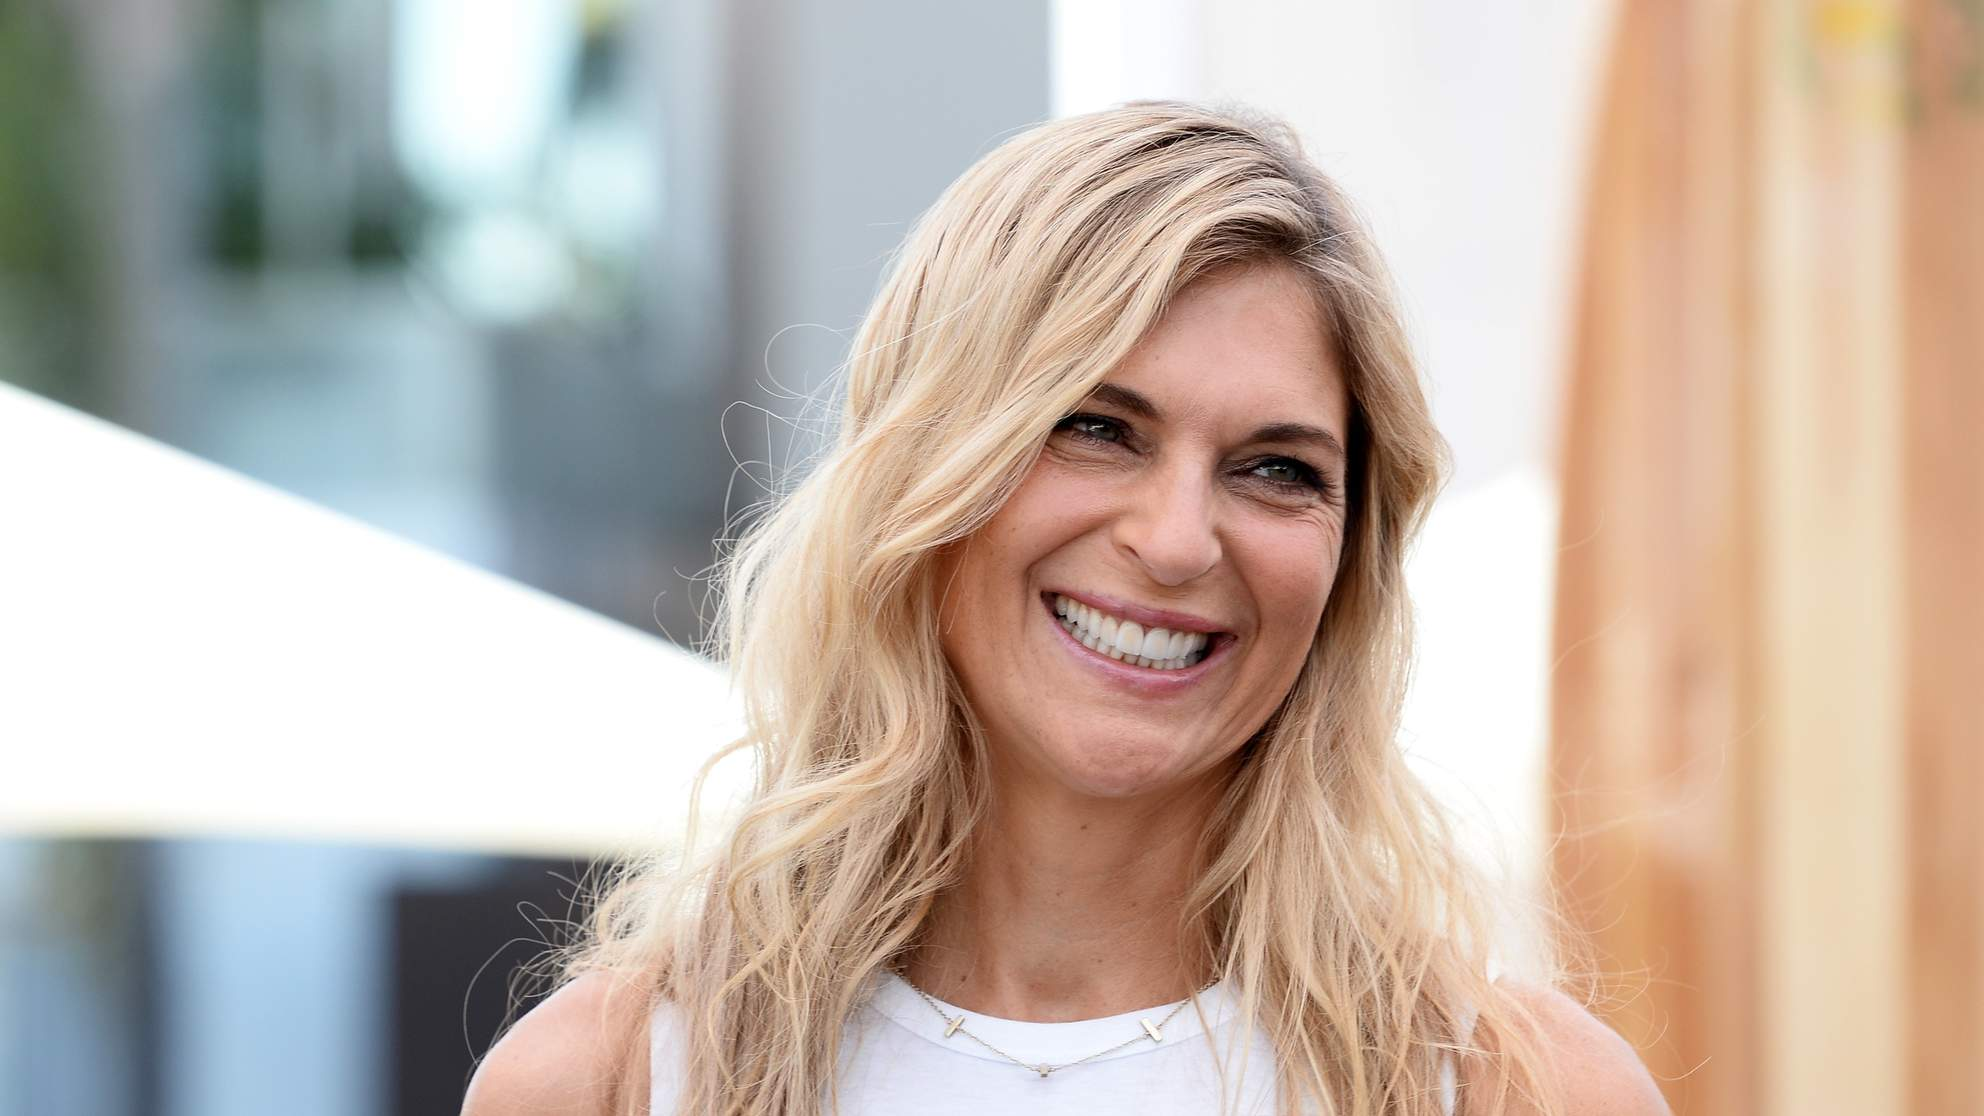 Gabby Reece: How I Stay Motivated to Work Out